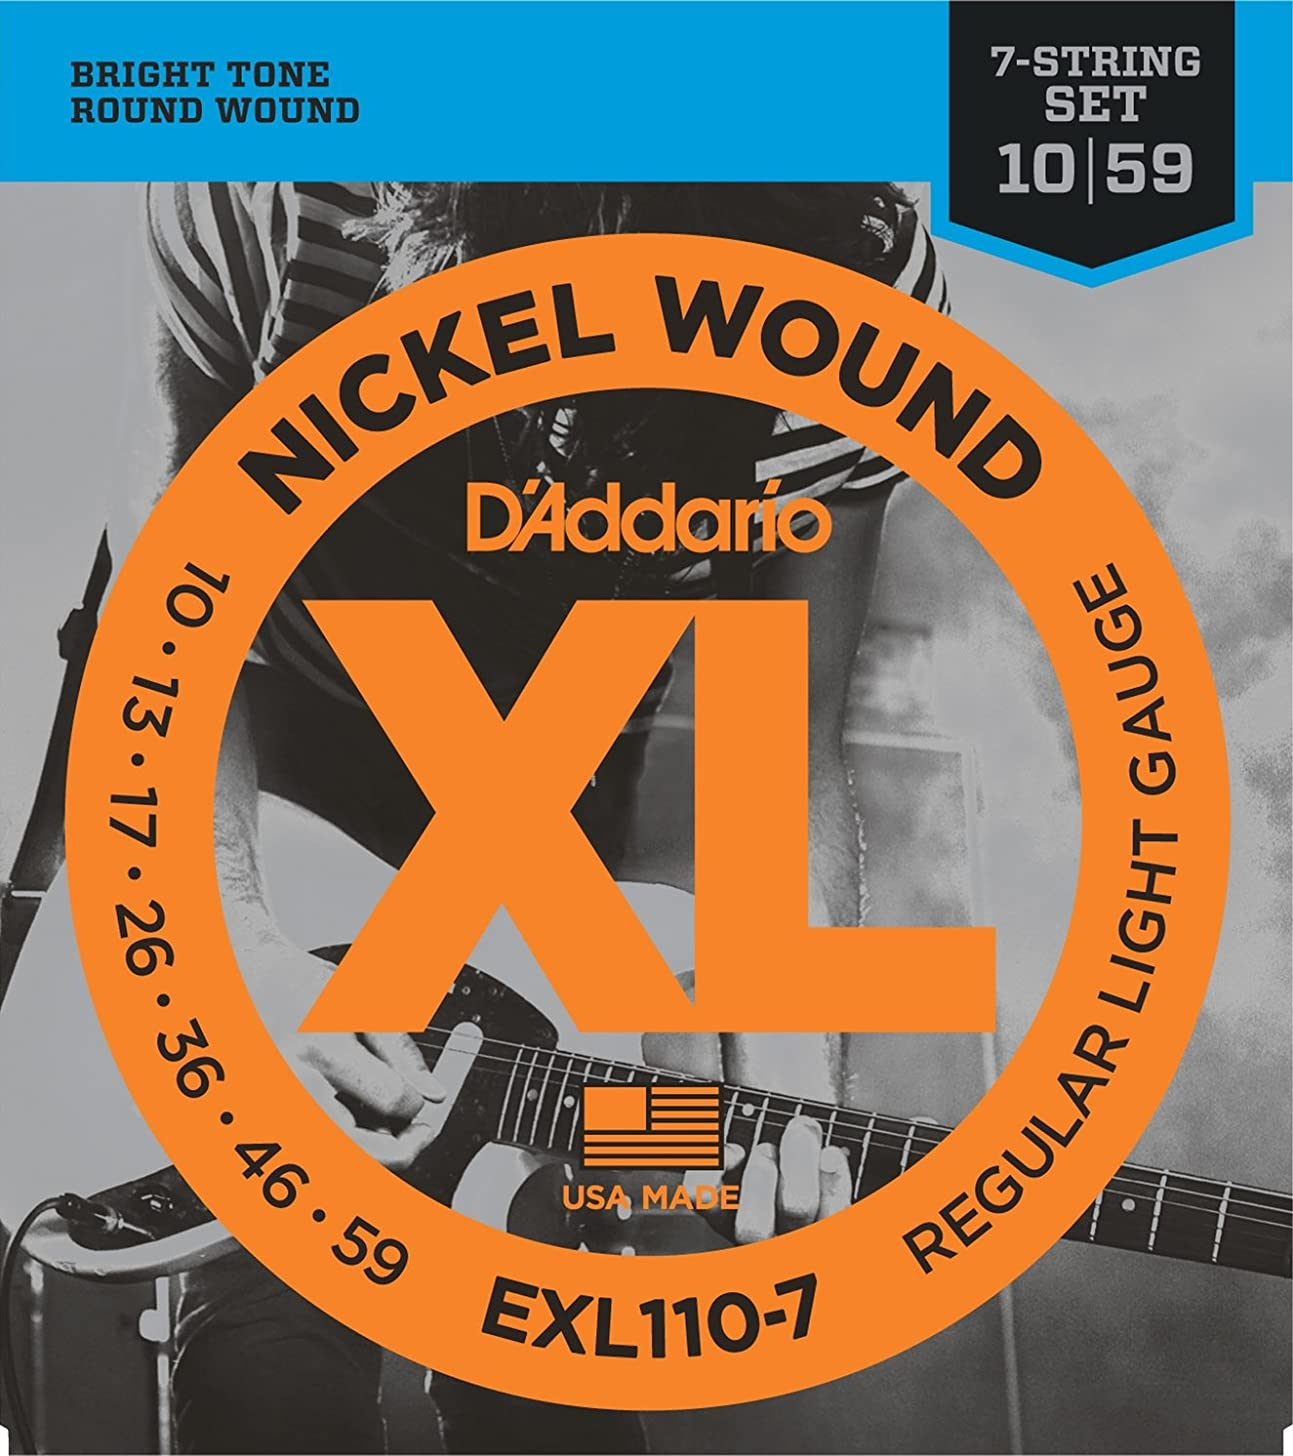 D'Addario XL Nickel Wound Electric Guitar Strings, Regular Light, 7 String Gauge – Round Wound with Nickel-Plated Steel for Long Lasting Distinctive Bright Tone and Excellent Intonation – 10-59, 1 Set